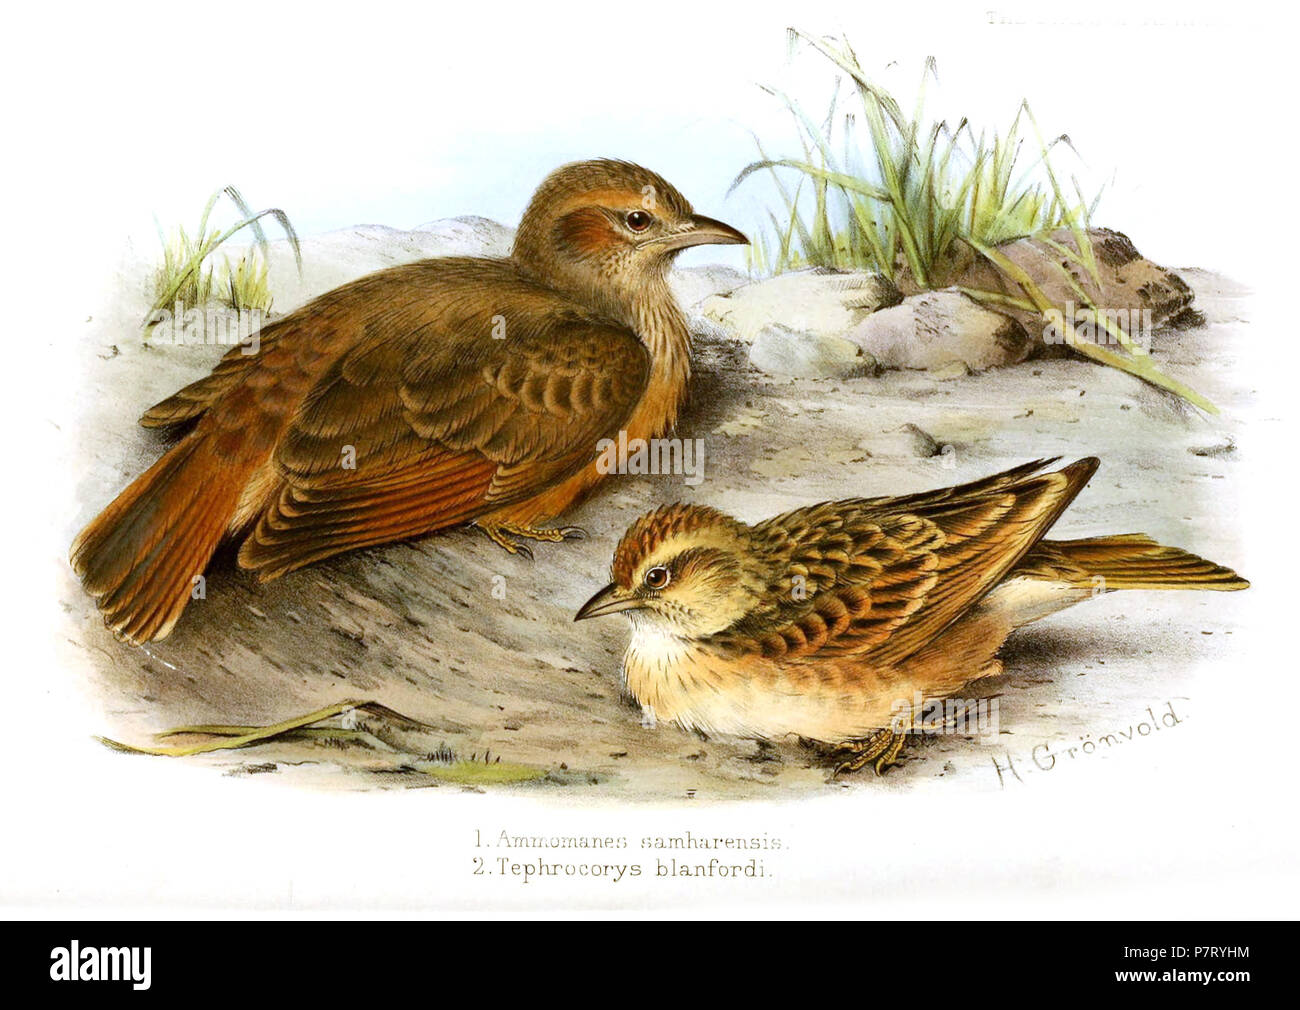 THE BIRDS OF AFRICA, PL. XXI. 1. Ammomanes samharensis 2. Tephrocorys blanfordi H. Grönvold English: Desert lark, Ammomanes deserti samharensis Shelley, 1902 (top), and Blanford's lark, Calandrella blanfordi (Shelley, 1902) (bottom) . 1902 20 Ammomanes Tephrocorys Gronvold - Stock Image